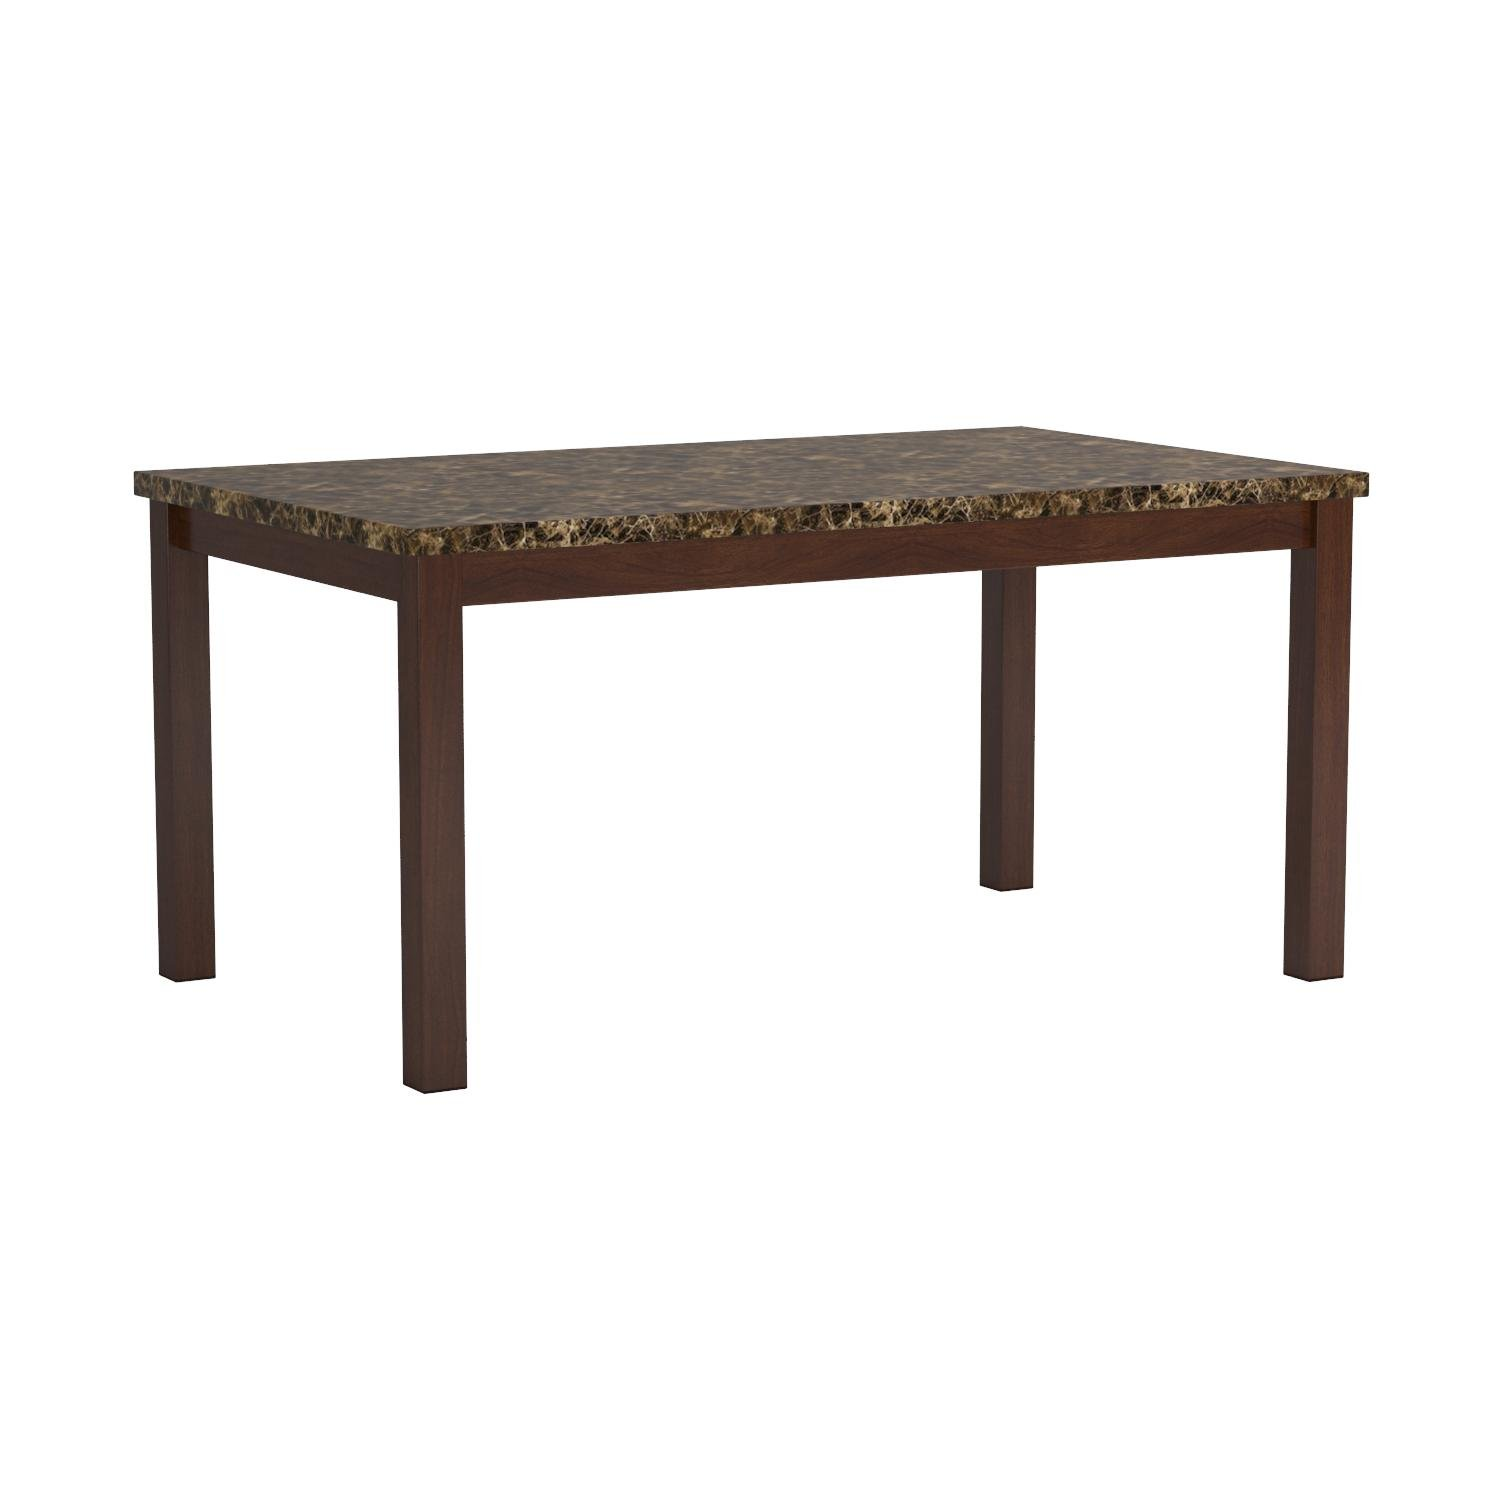 Coaster Dining Table with Marble-Like Top Rich Cherry Finish by Coaster Home Furnishings